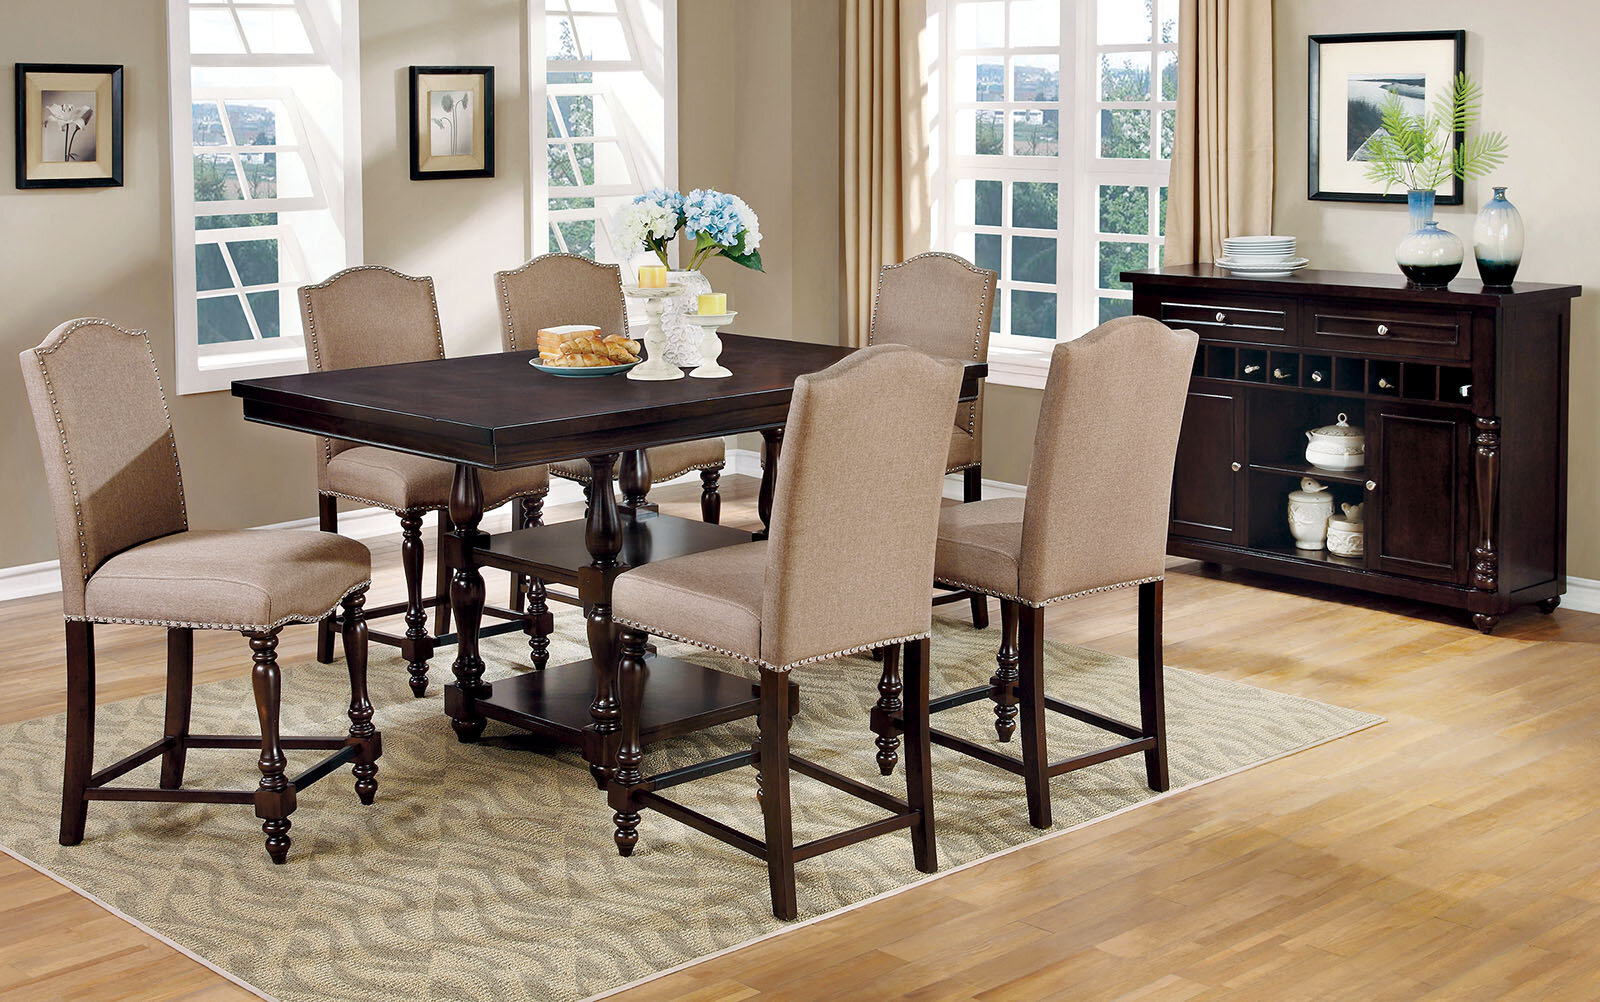 Incroyable Hiram 7 Piece Counter Height Dining Set